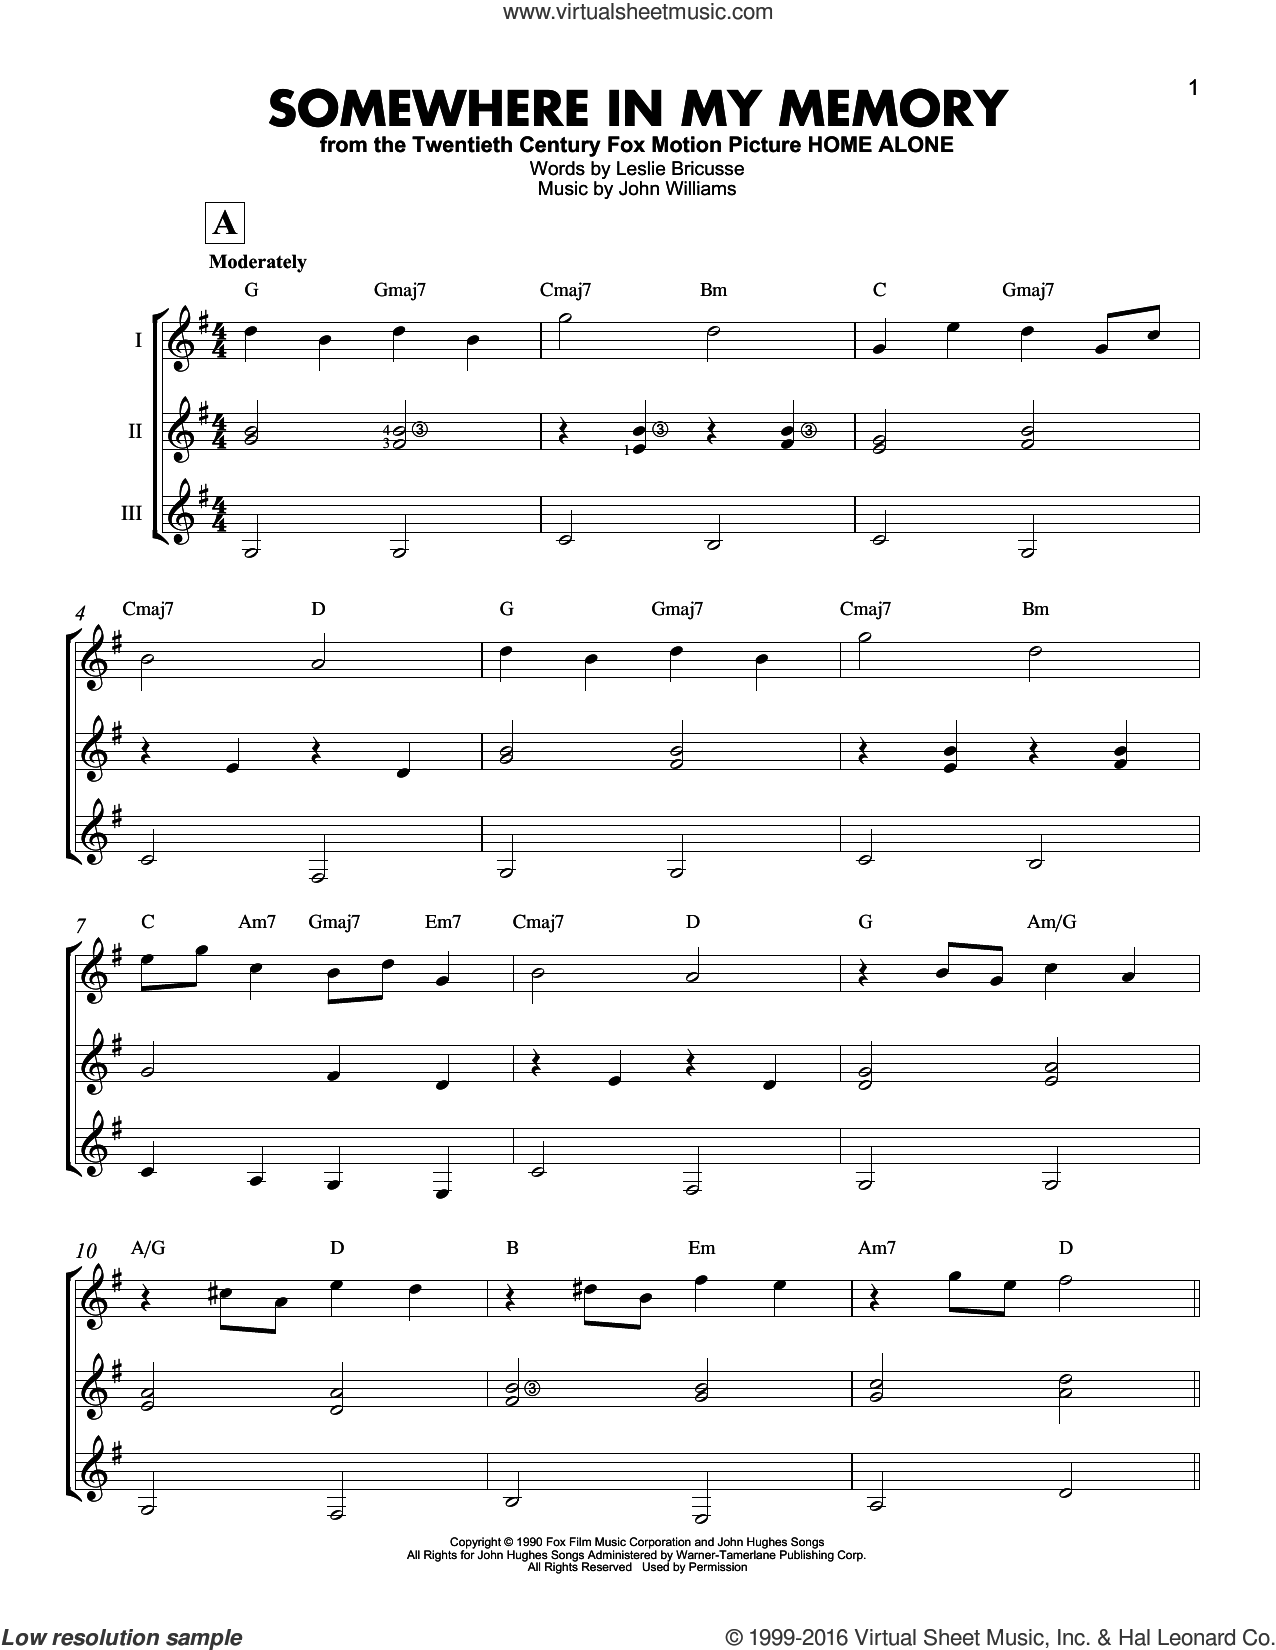 Somewhere In My Memory sheet music for guitar ensemble by John Williams and Leslie Bricusse, intermediate skill level